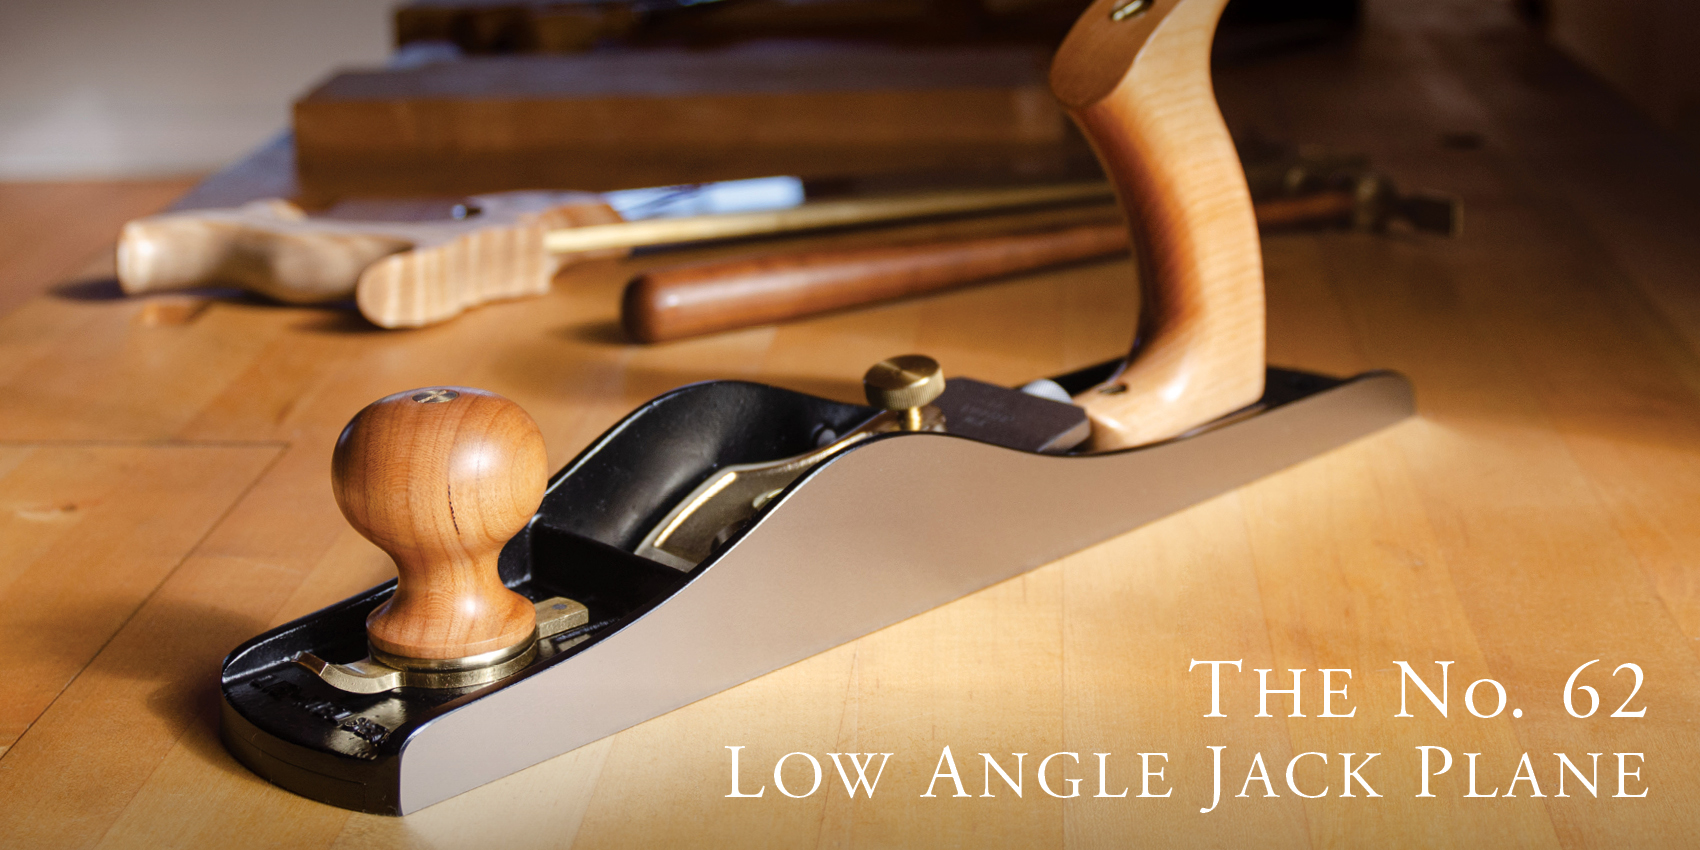 The No. 62 Low Angle Jack Plane